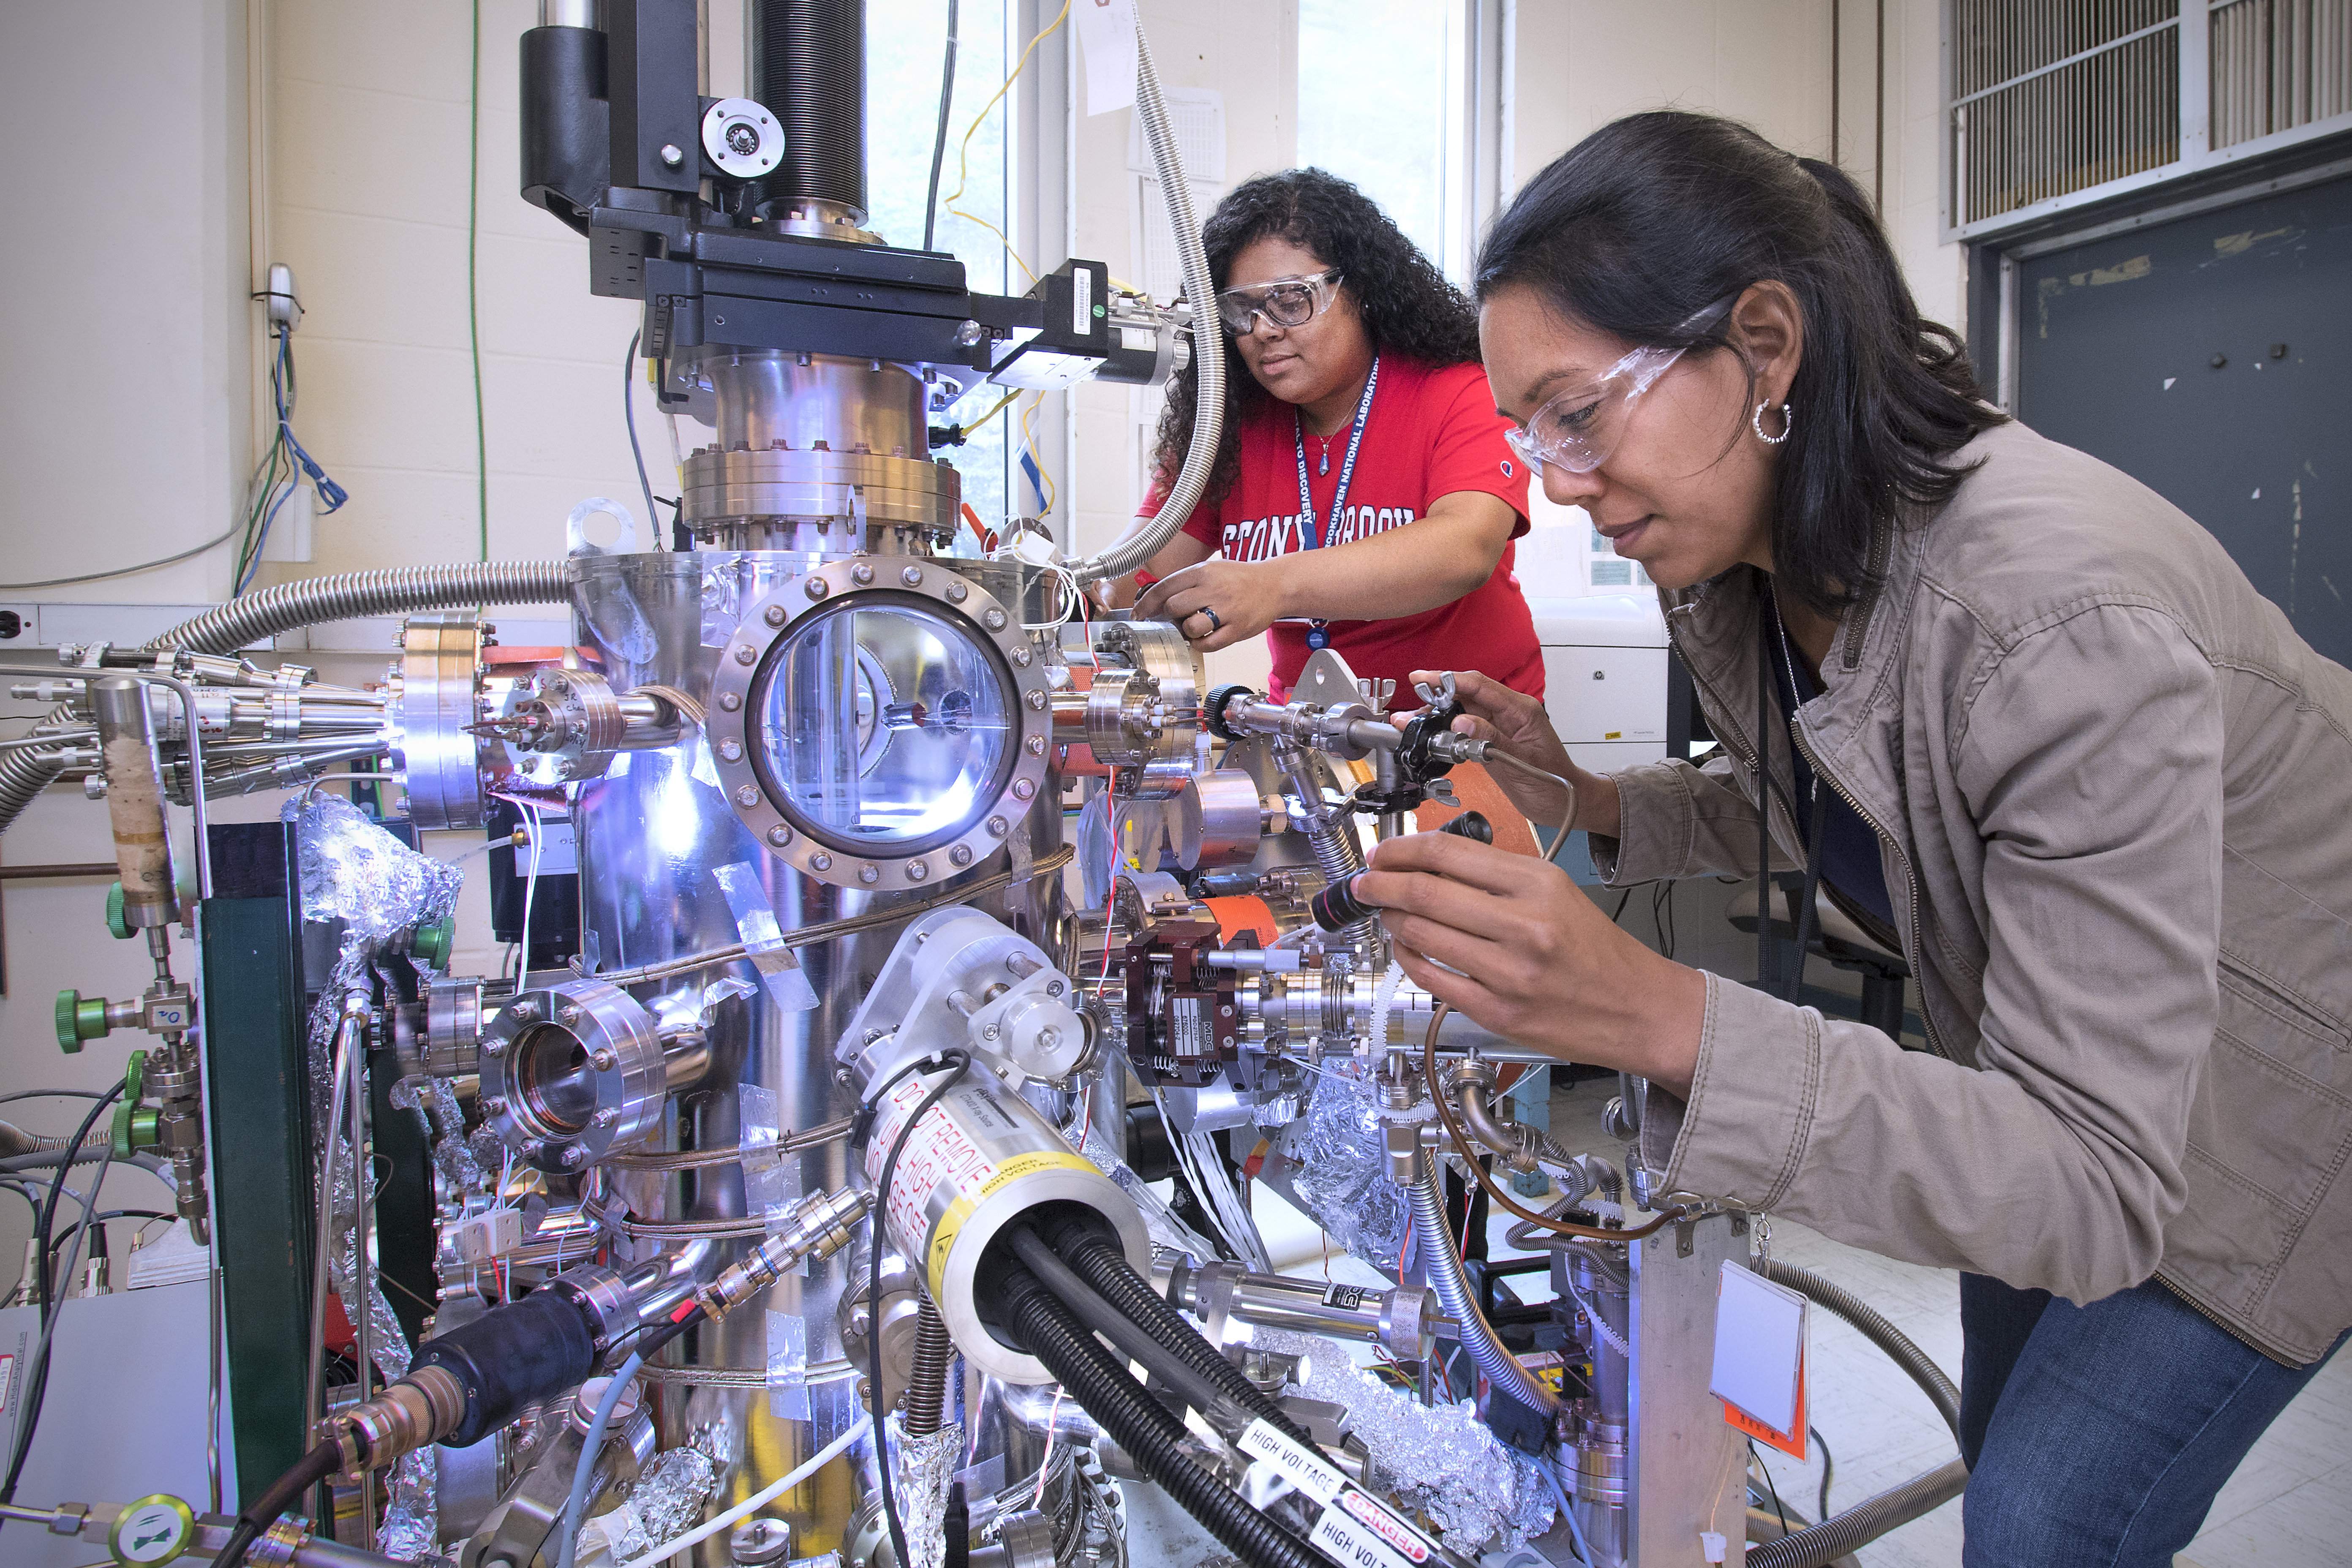 Nylette Lopez (rear) and Stephanie Taboada use state-of-the-art equipment to characterize catalysts as they seek ways to convert carbon dioxide and methane into synthesis gas.